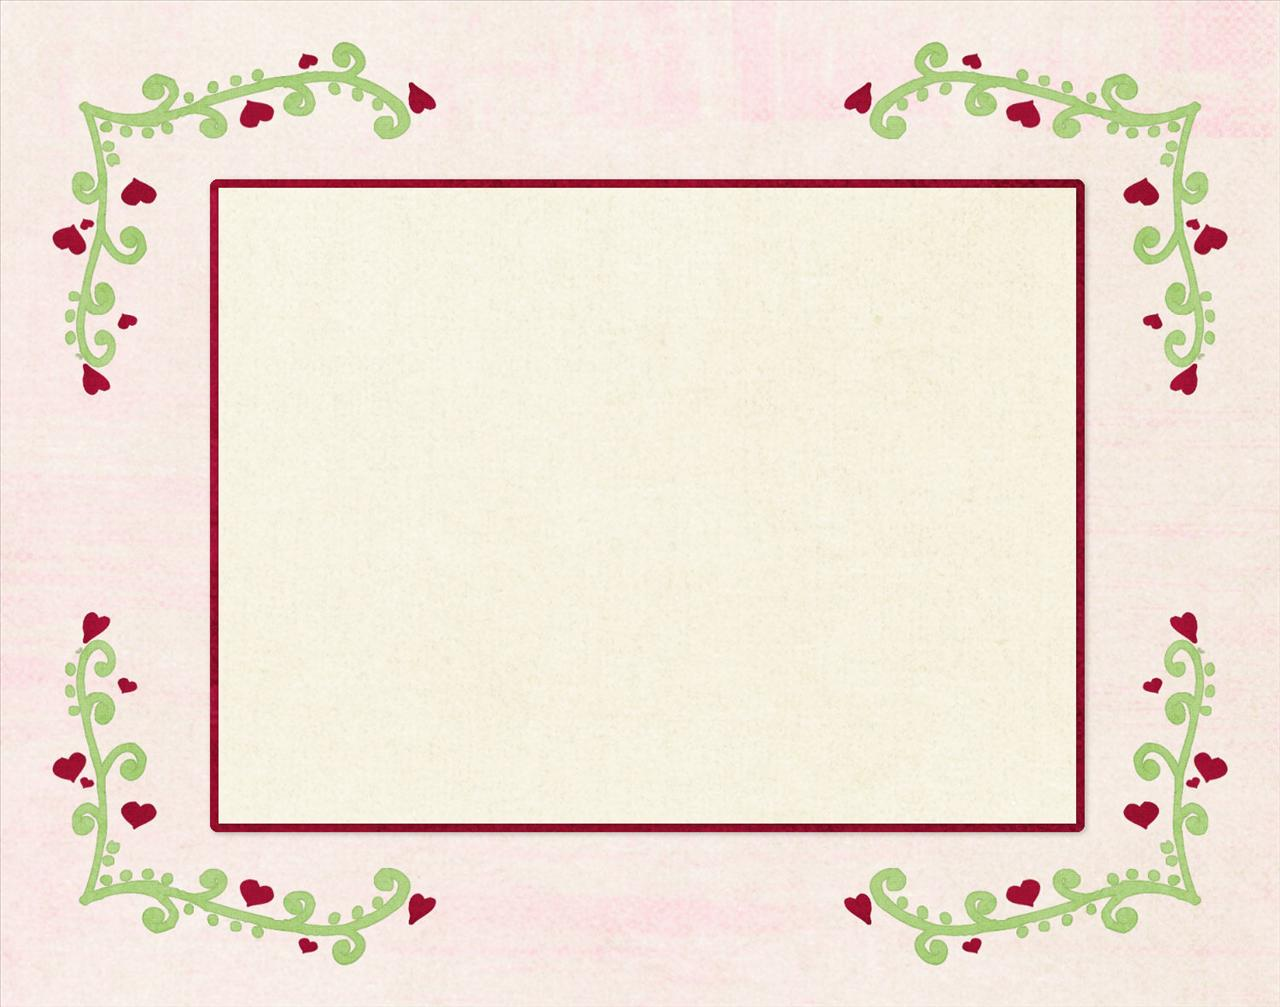 heart frame ppt backgrounds 1024x768 resolutions heart